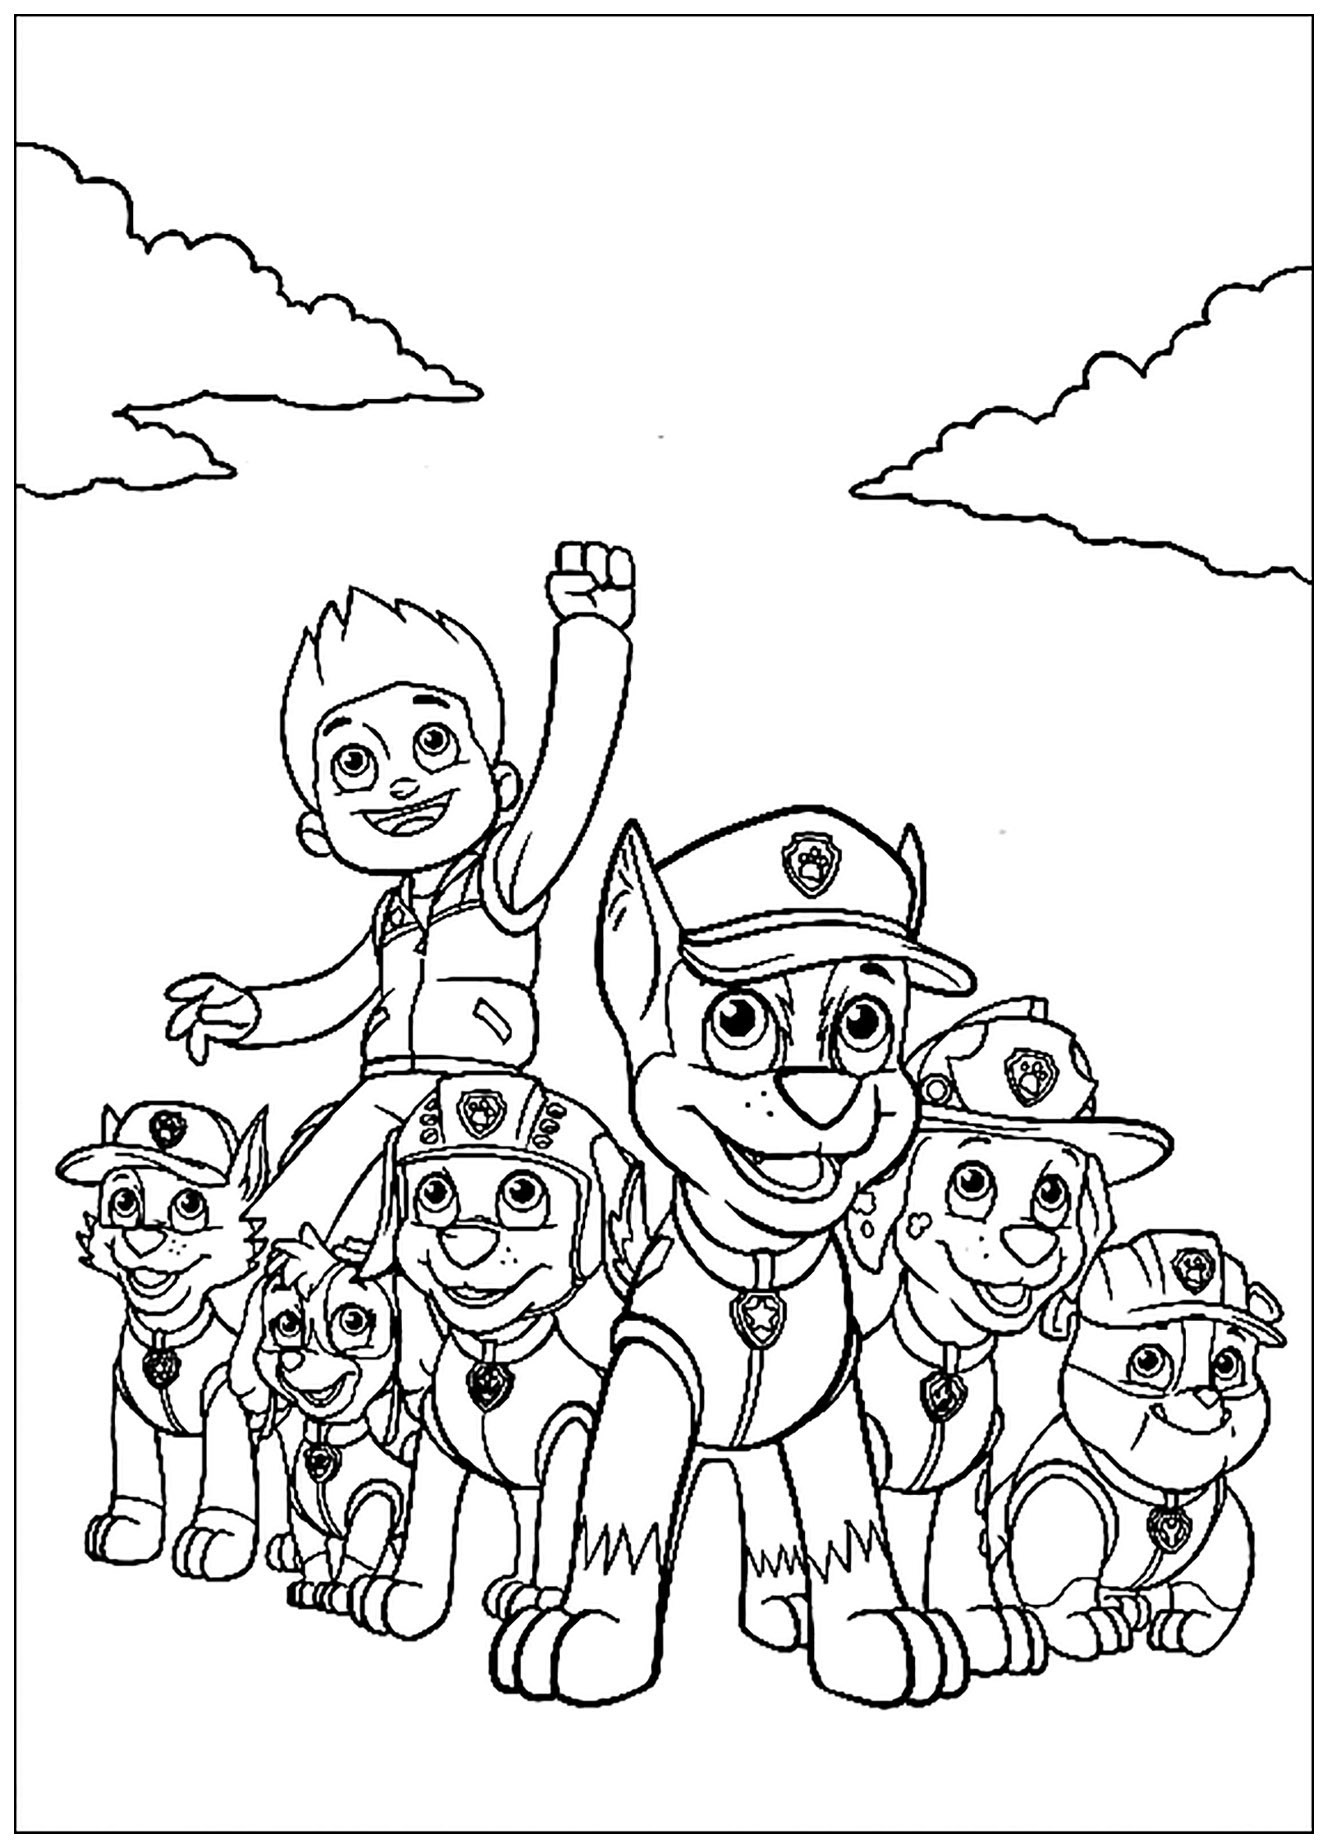 Paw Patrol For Children - Paw Patrol Kids Coloring Pages